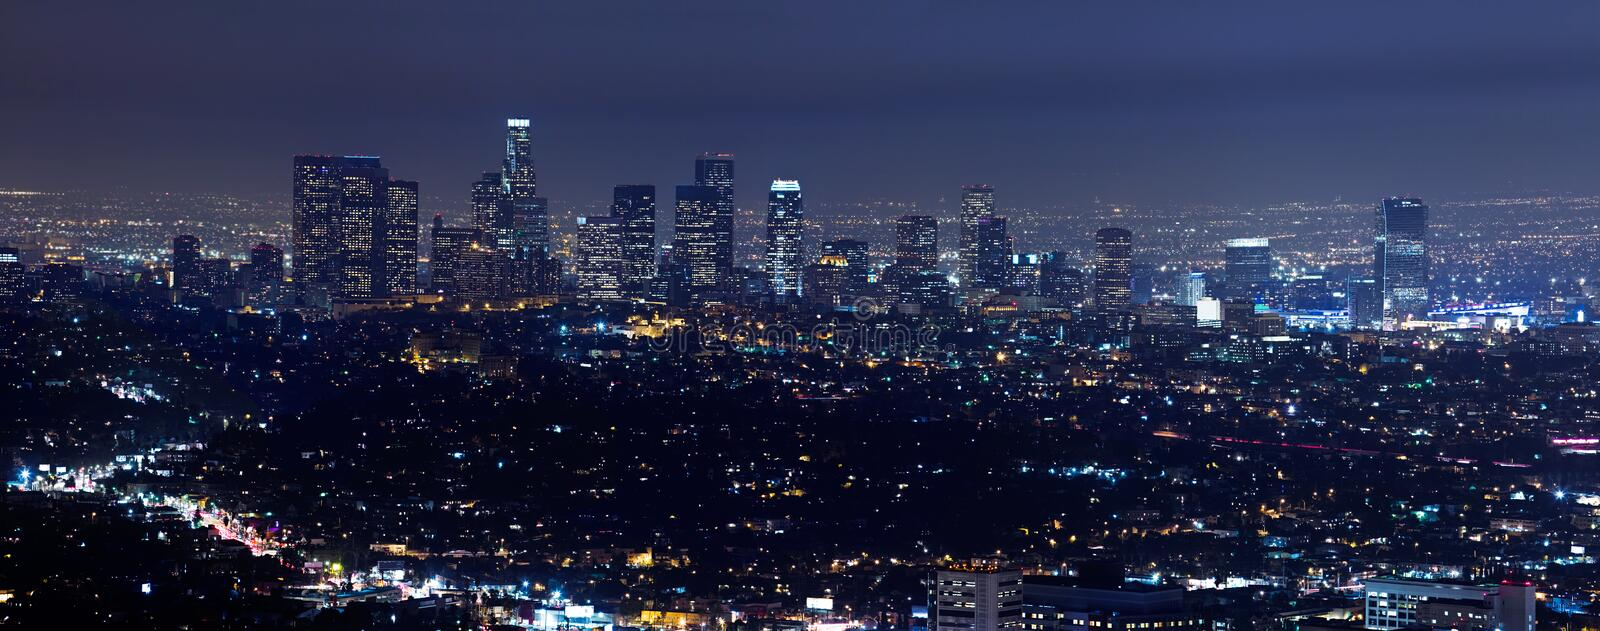 Los Angeles Skyline At Night. High rises of Los Angeles downtown area at night stock photos